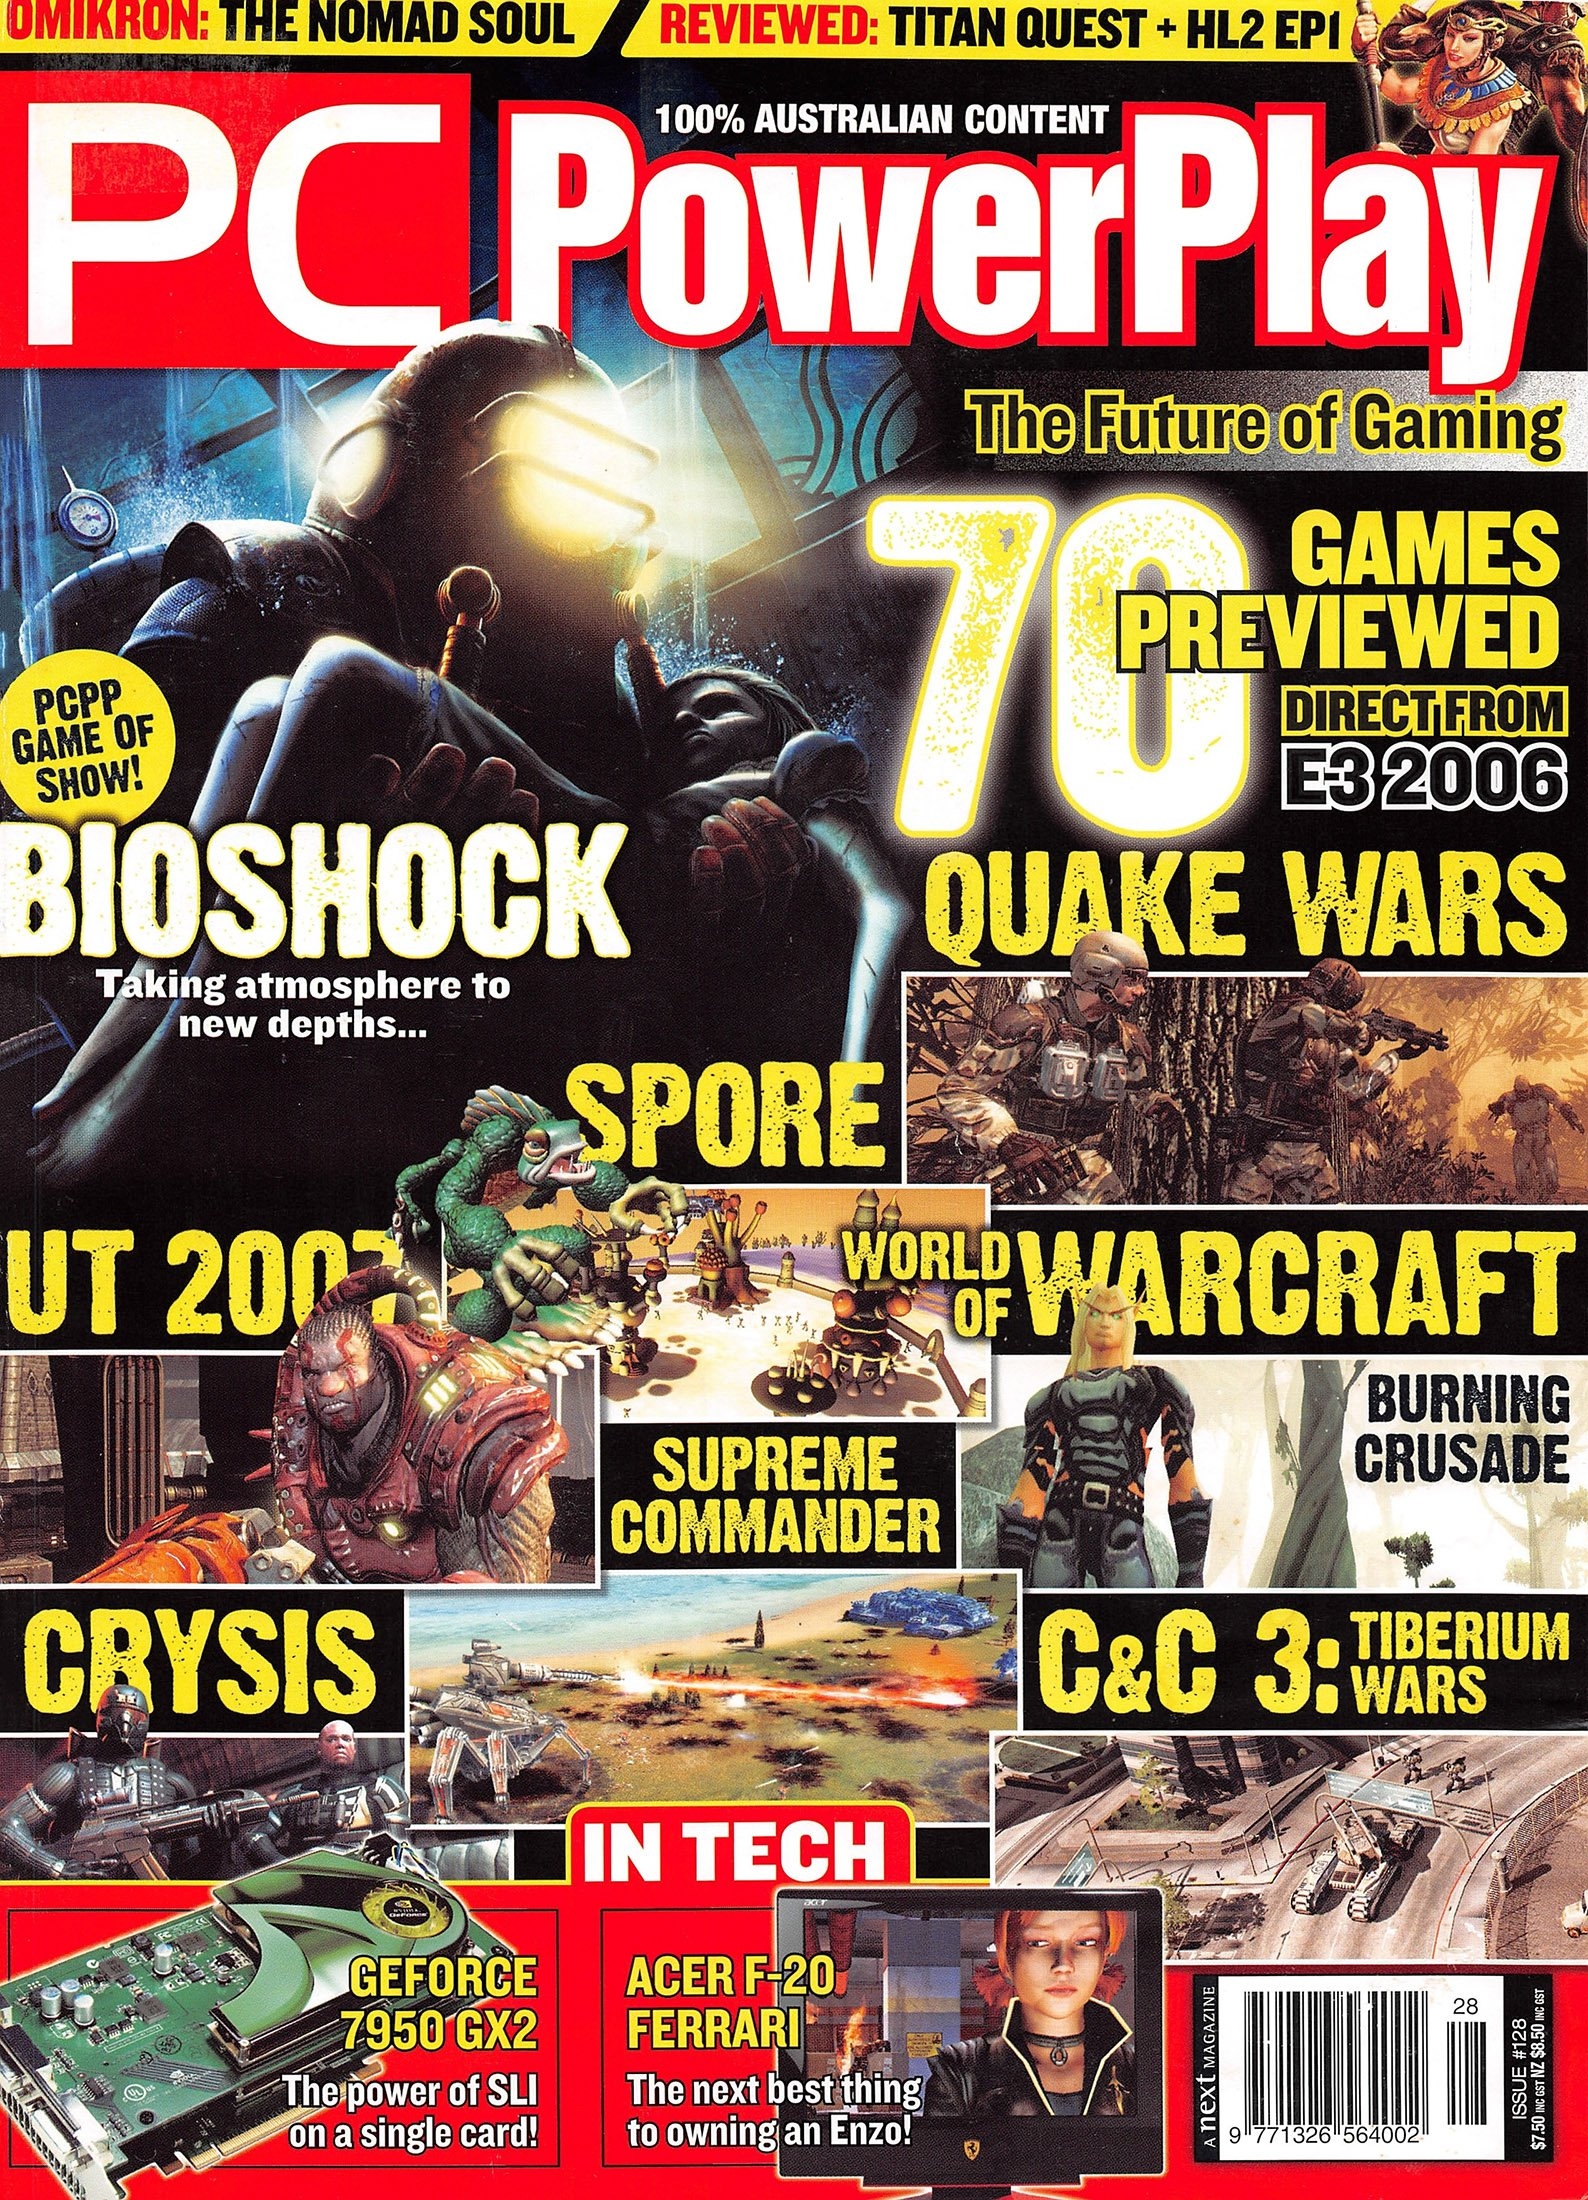 PC PowerPlay 128 (August 2006)